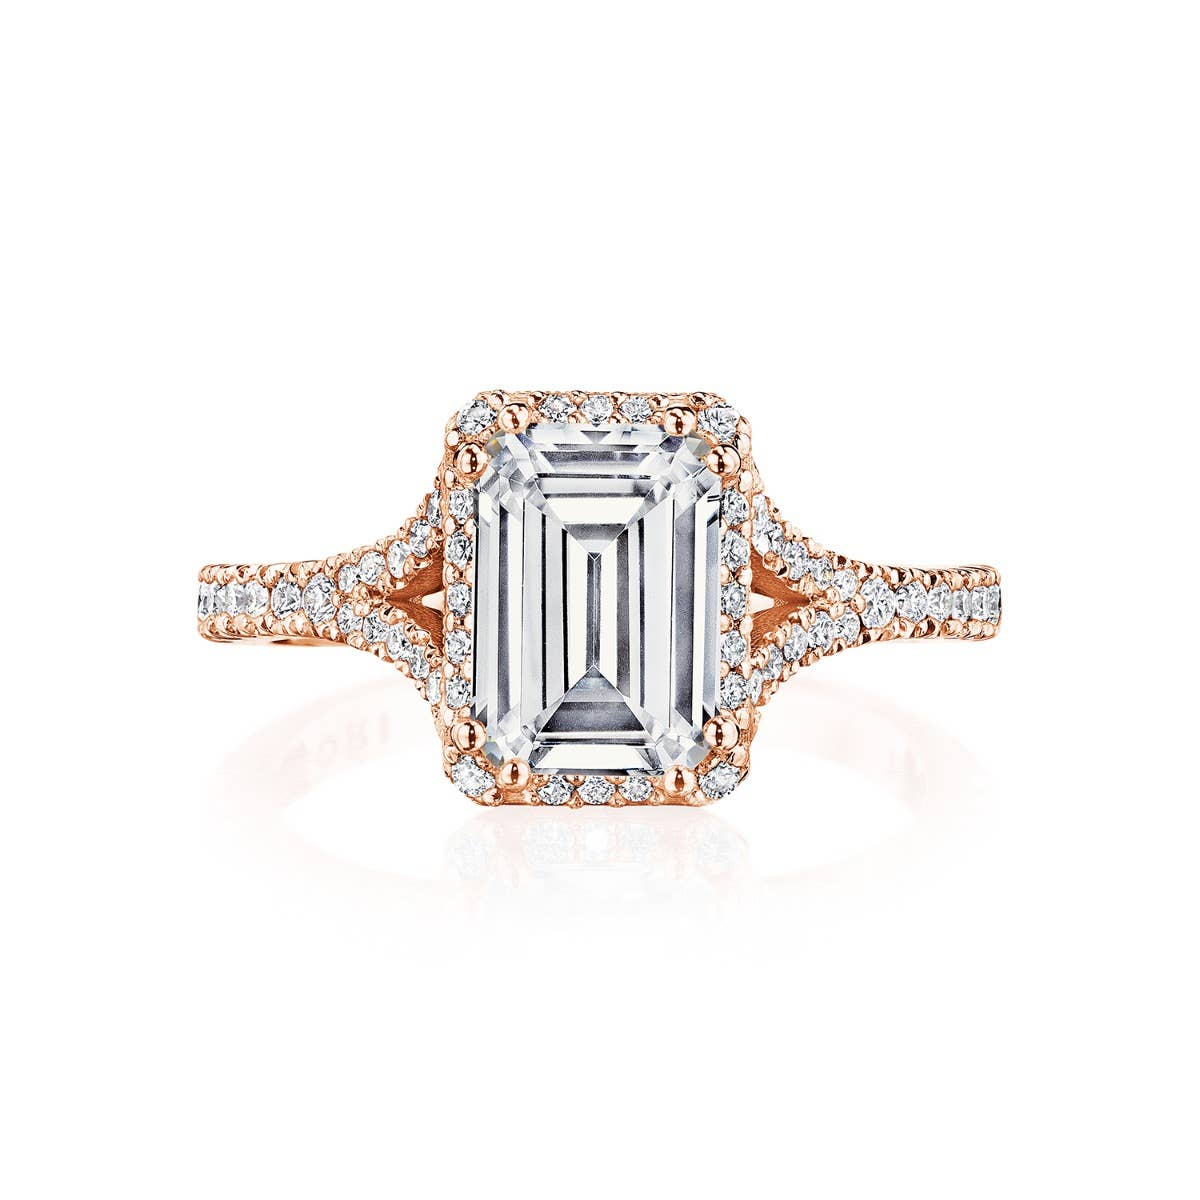 Rose gold bloom engagement ring from Tacori's Crescent Chandelier collection